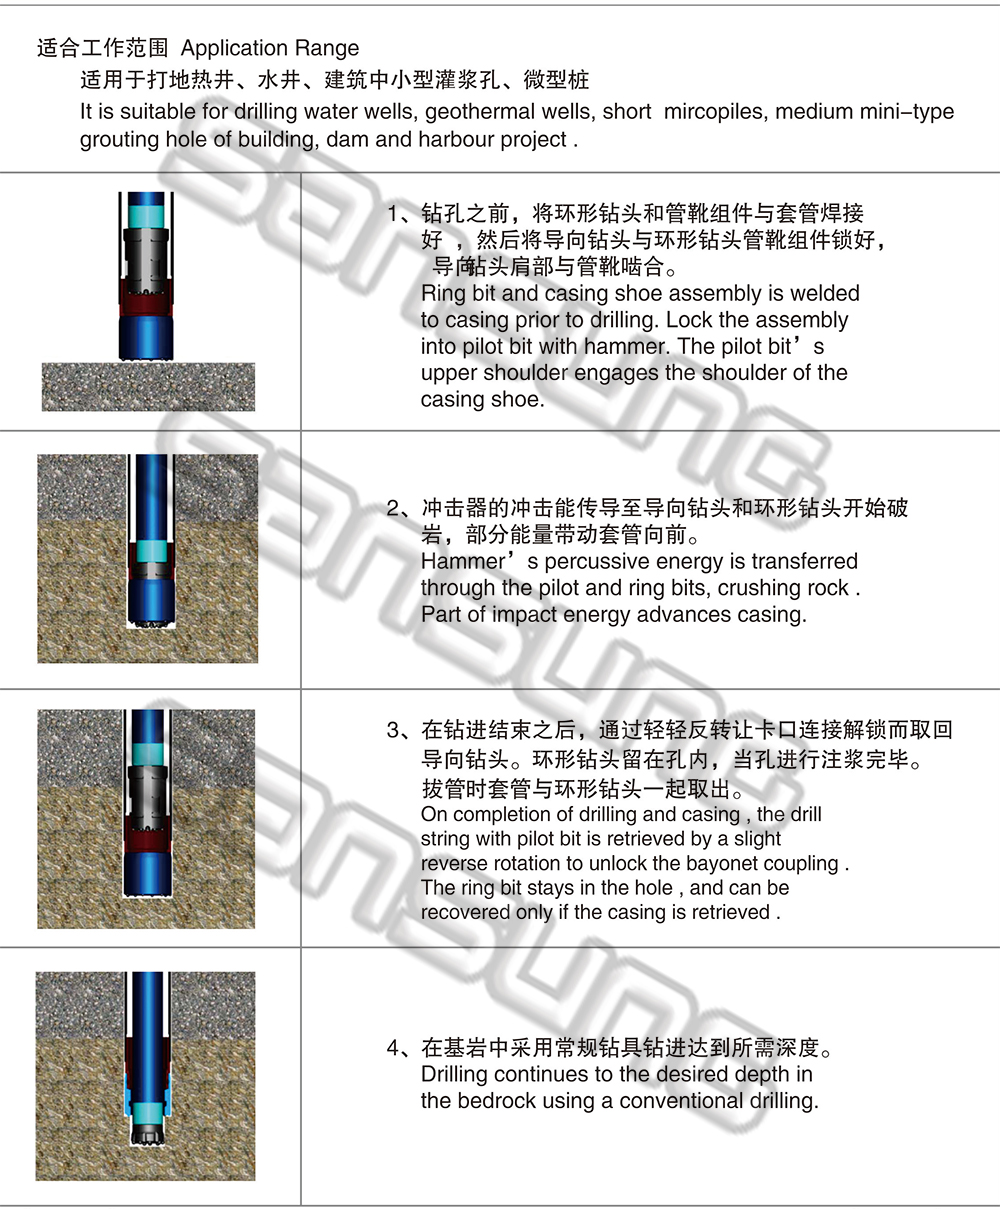 symmetric (concentric) casing drilling equipment.jpg